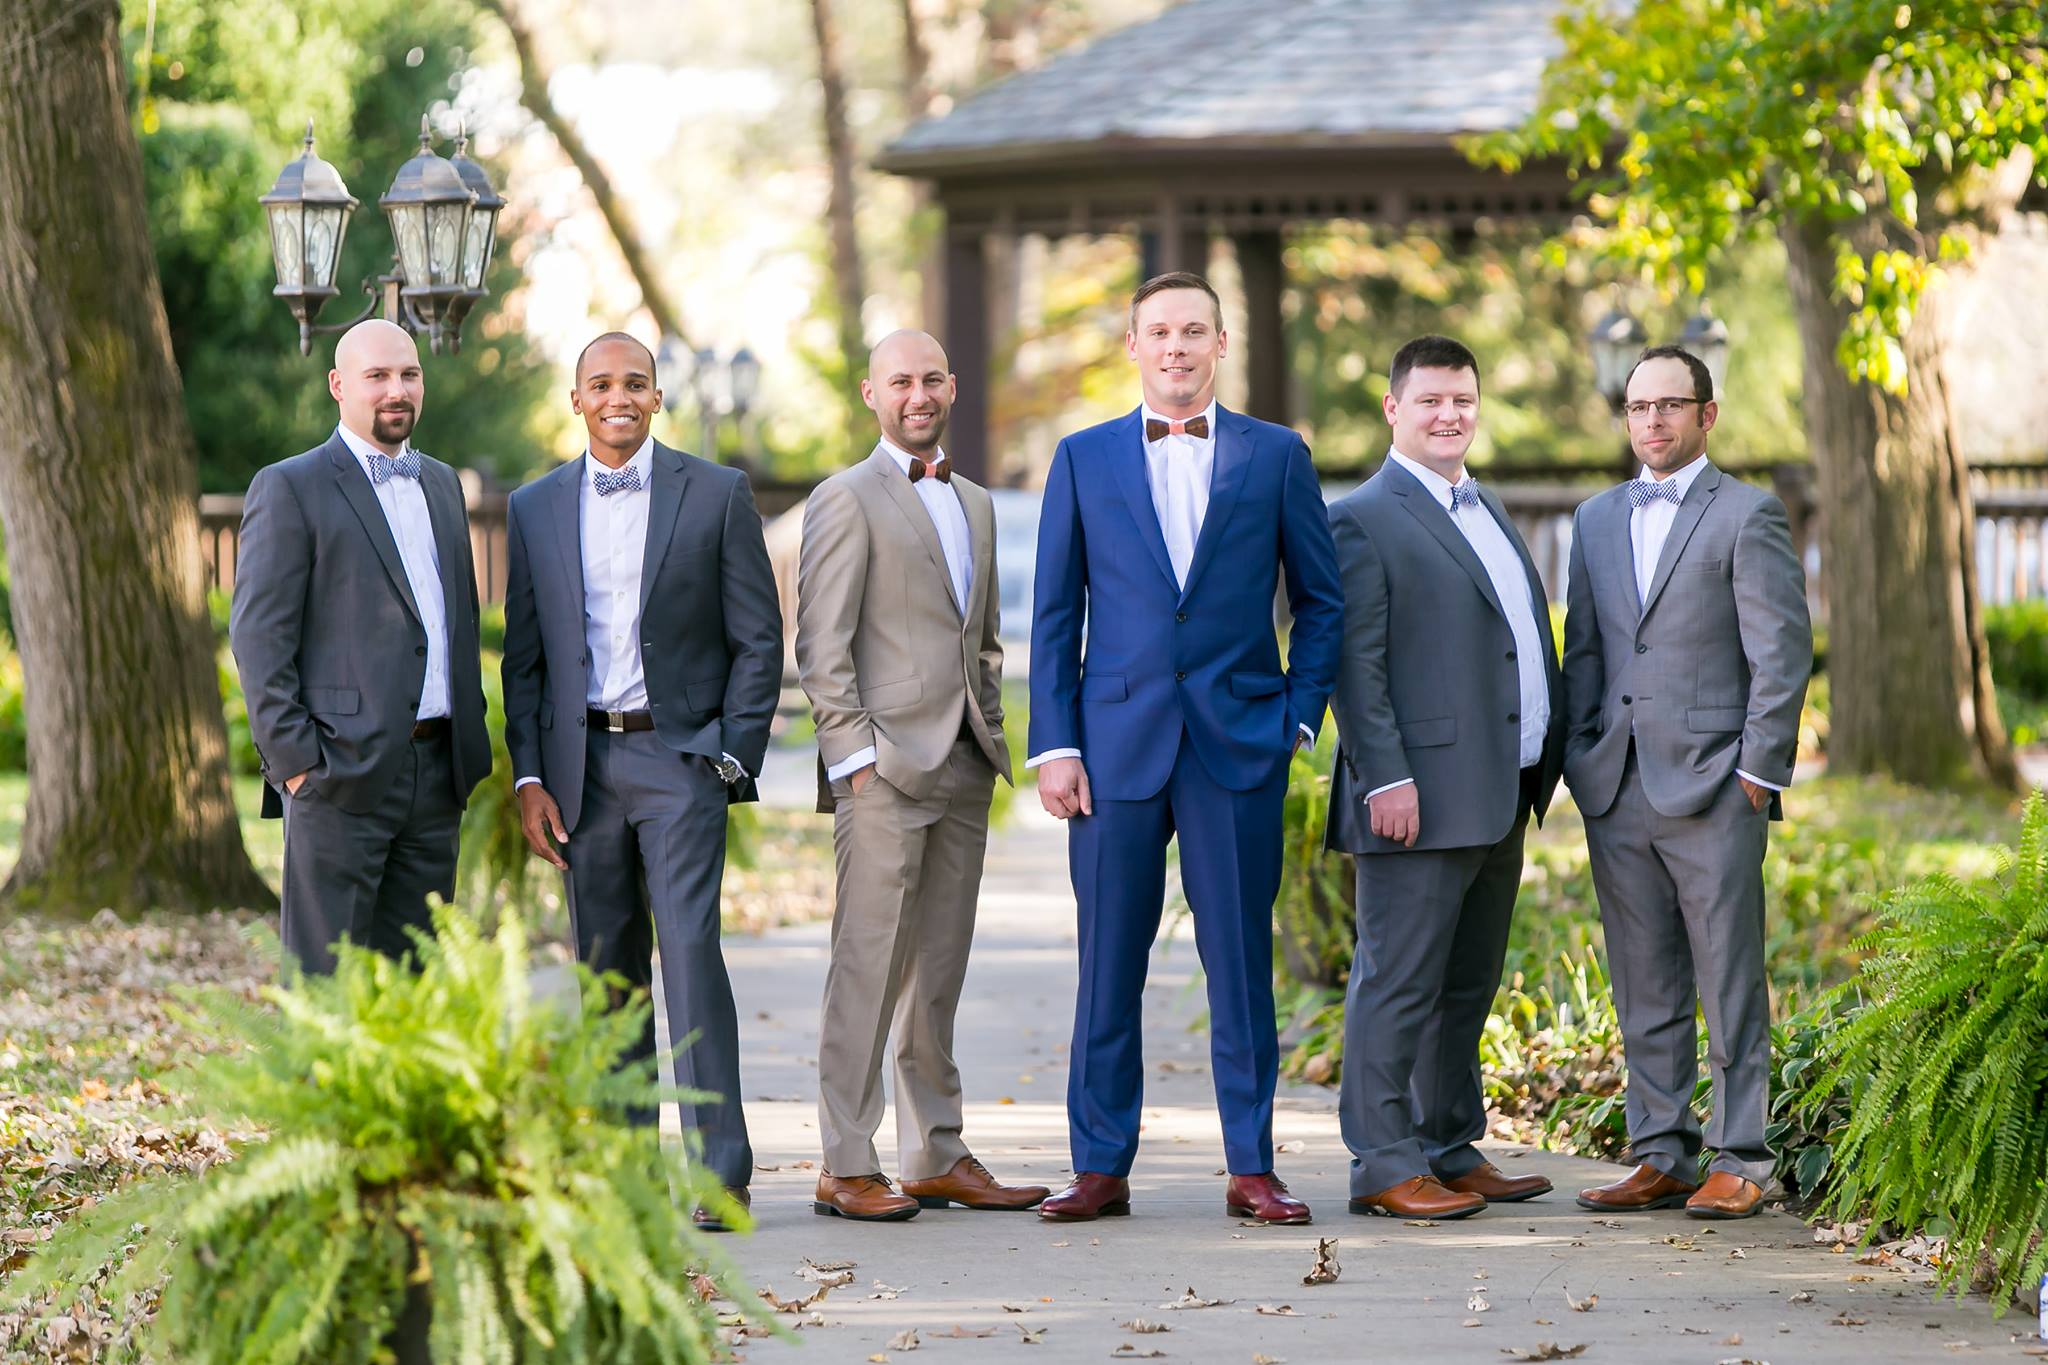 We did both Jordan and Lucas' suit for their wedding. Jordan is a commercial real estate broker with  Ferguson Properties , and is instrumental in the redevelopment of our historical neighborhood.